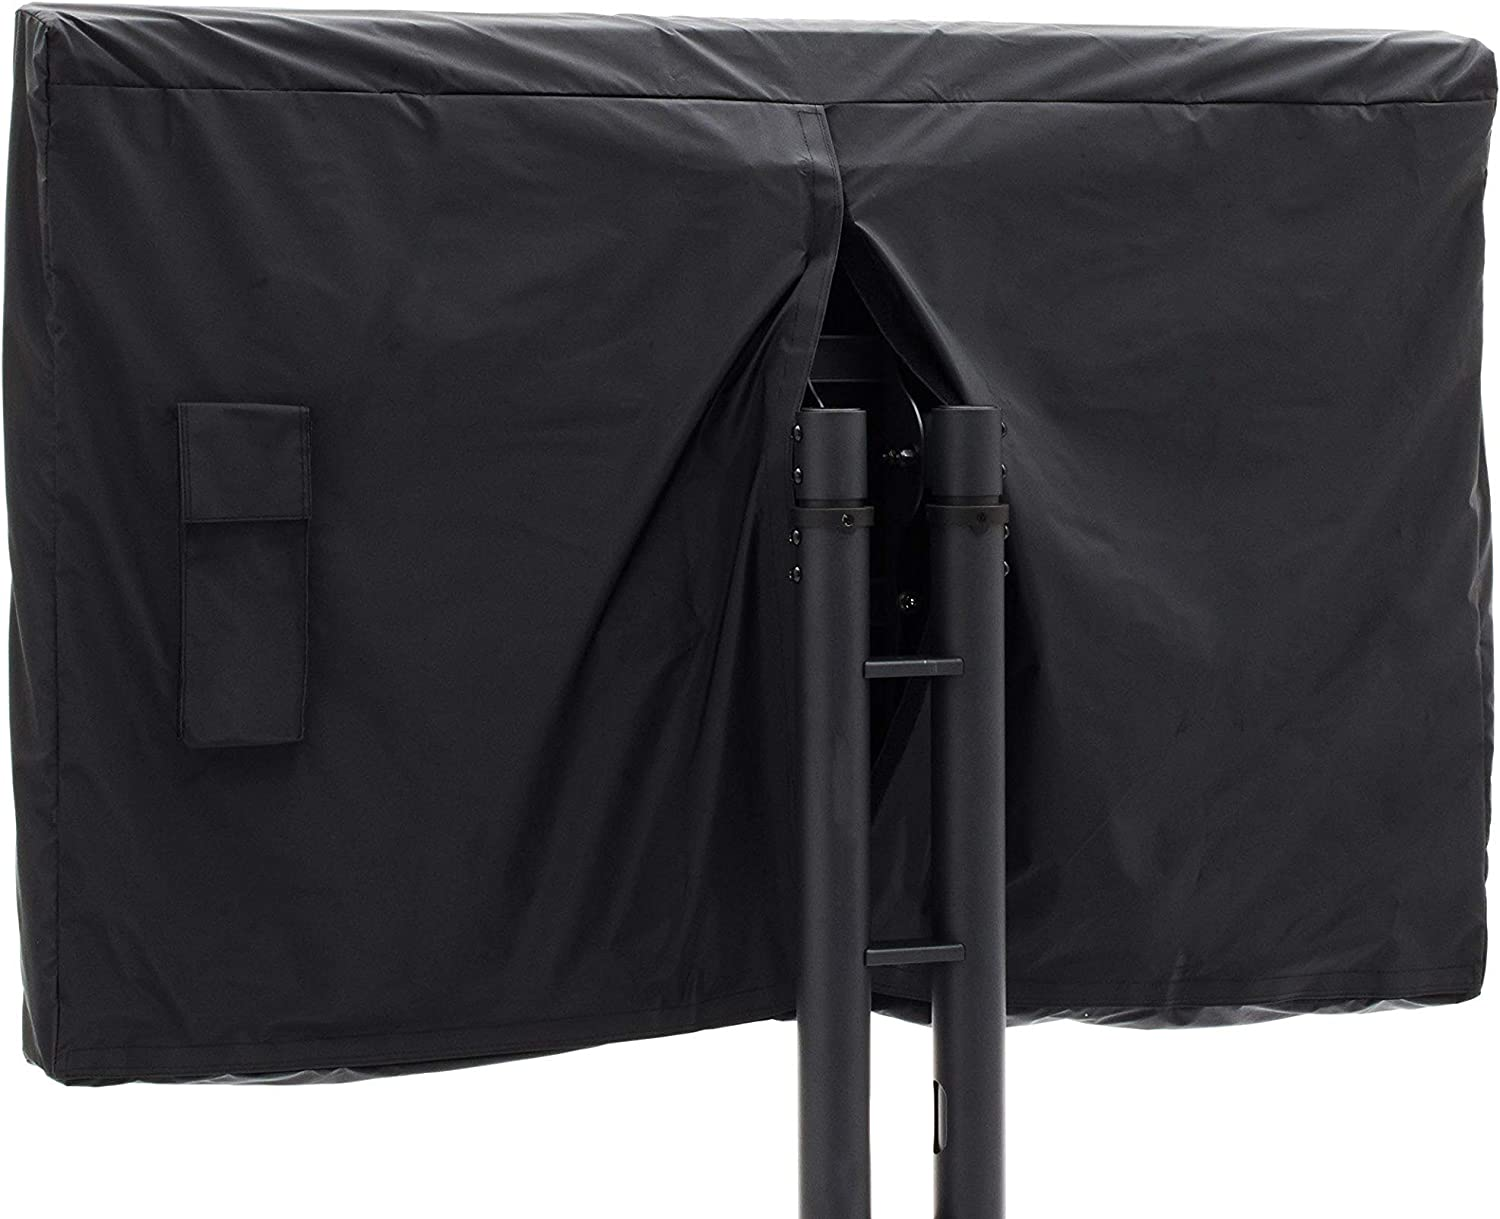 Covermates - Outdoor TV Cover - Fits 46 to 49 Inch TV's - Classic - 12-Gauge Vinyl with Polyester Backing - Full Coverage - Bottom and Back Closures - Water Resistant - Black